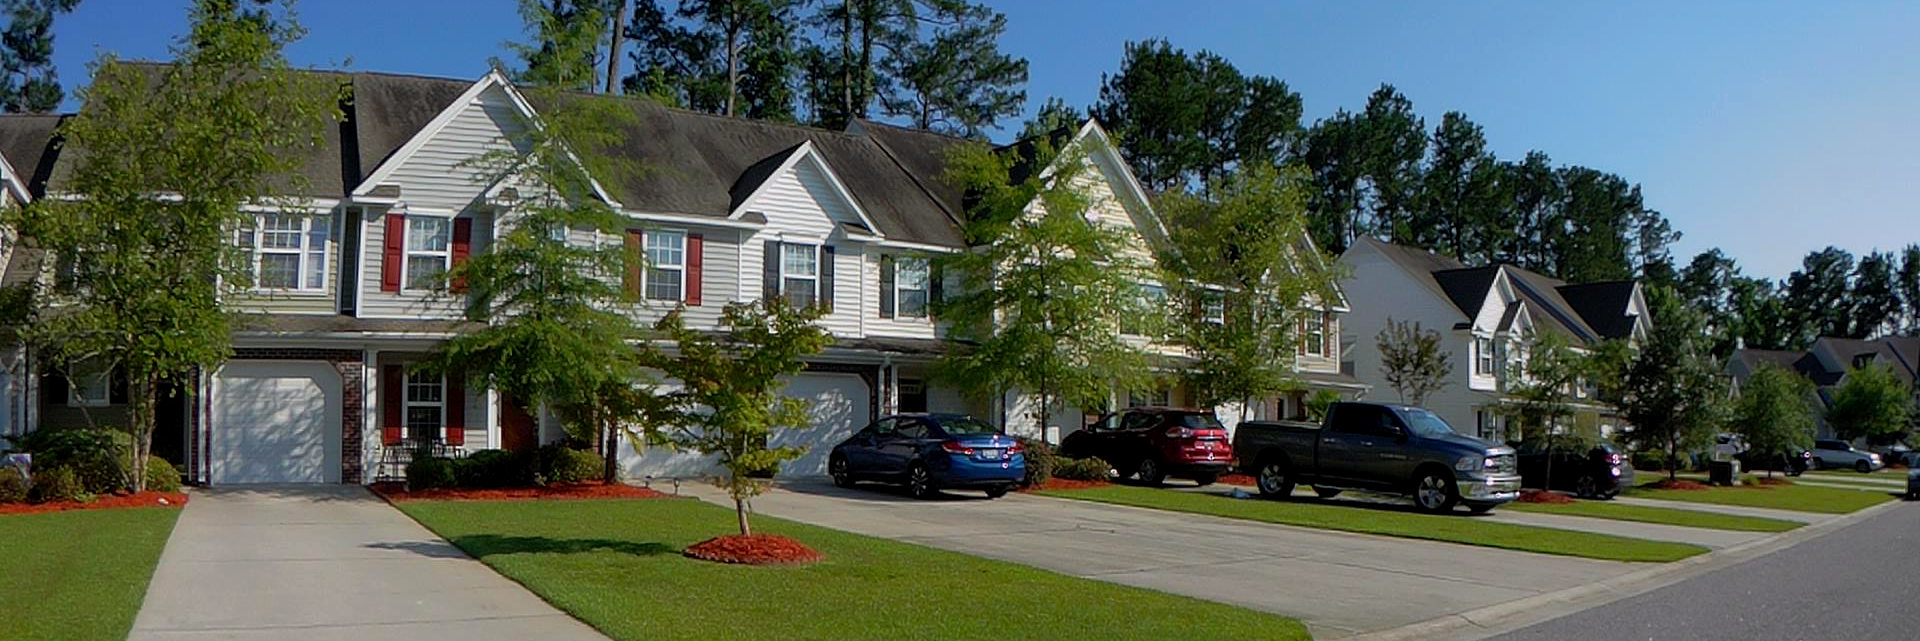 Townhomes For Sale in River Bend - Socastee, Myrtle Beach SC